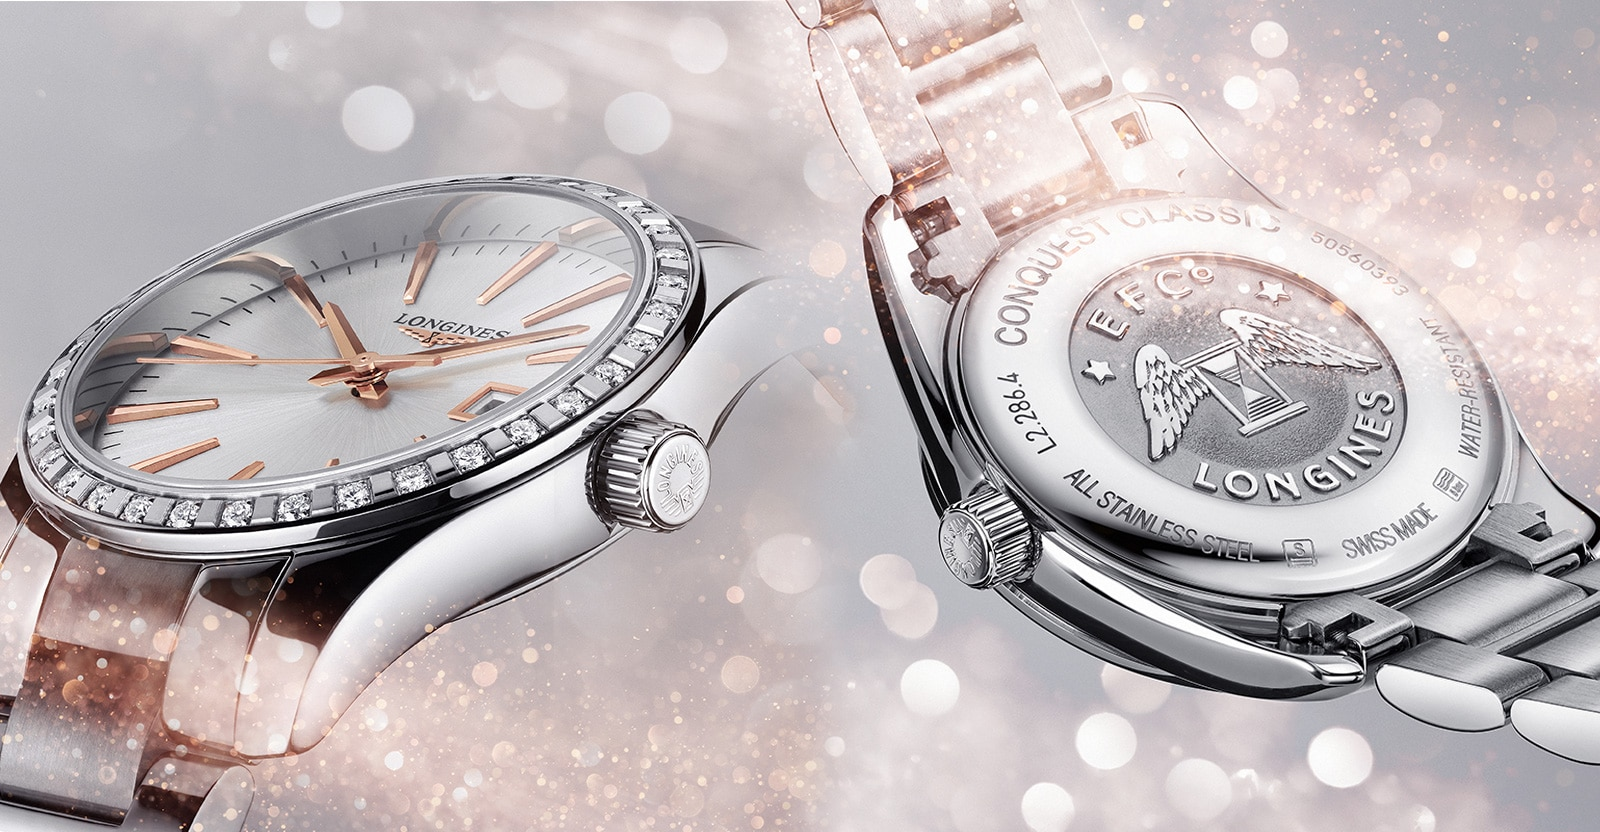 New Conquest Classic with Diamonds and gold indexes